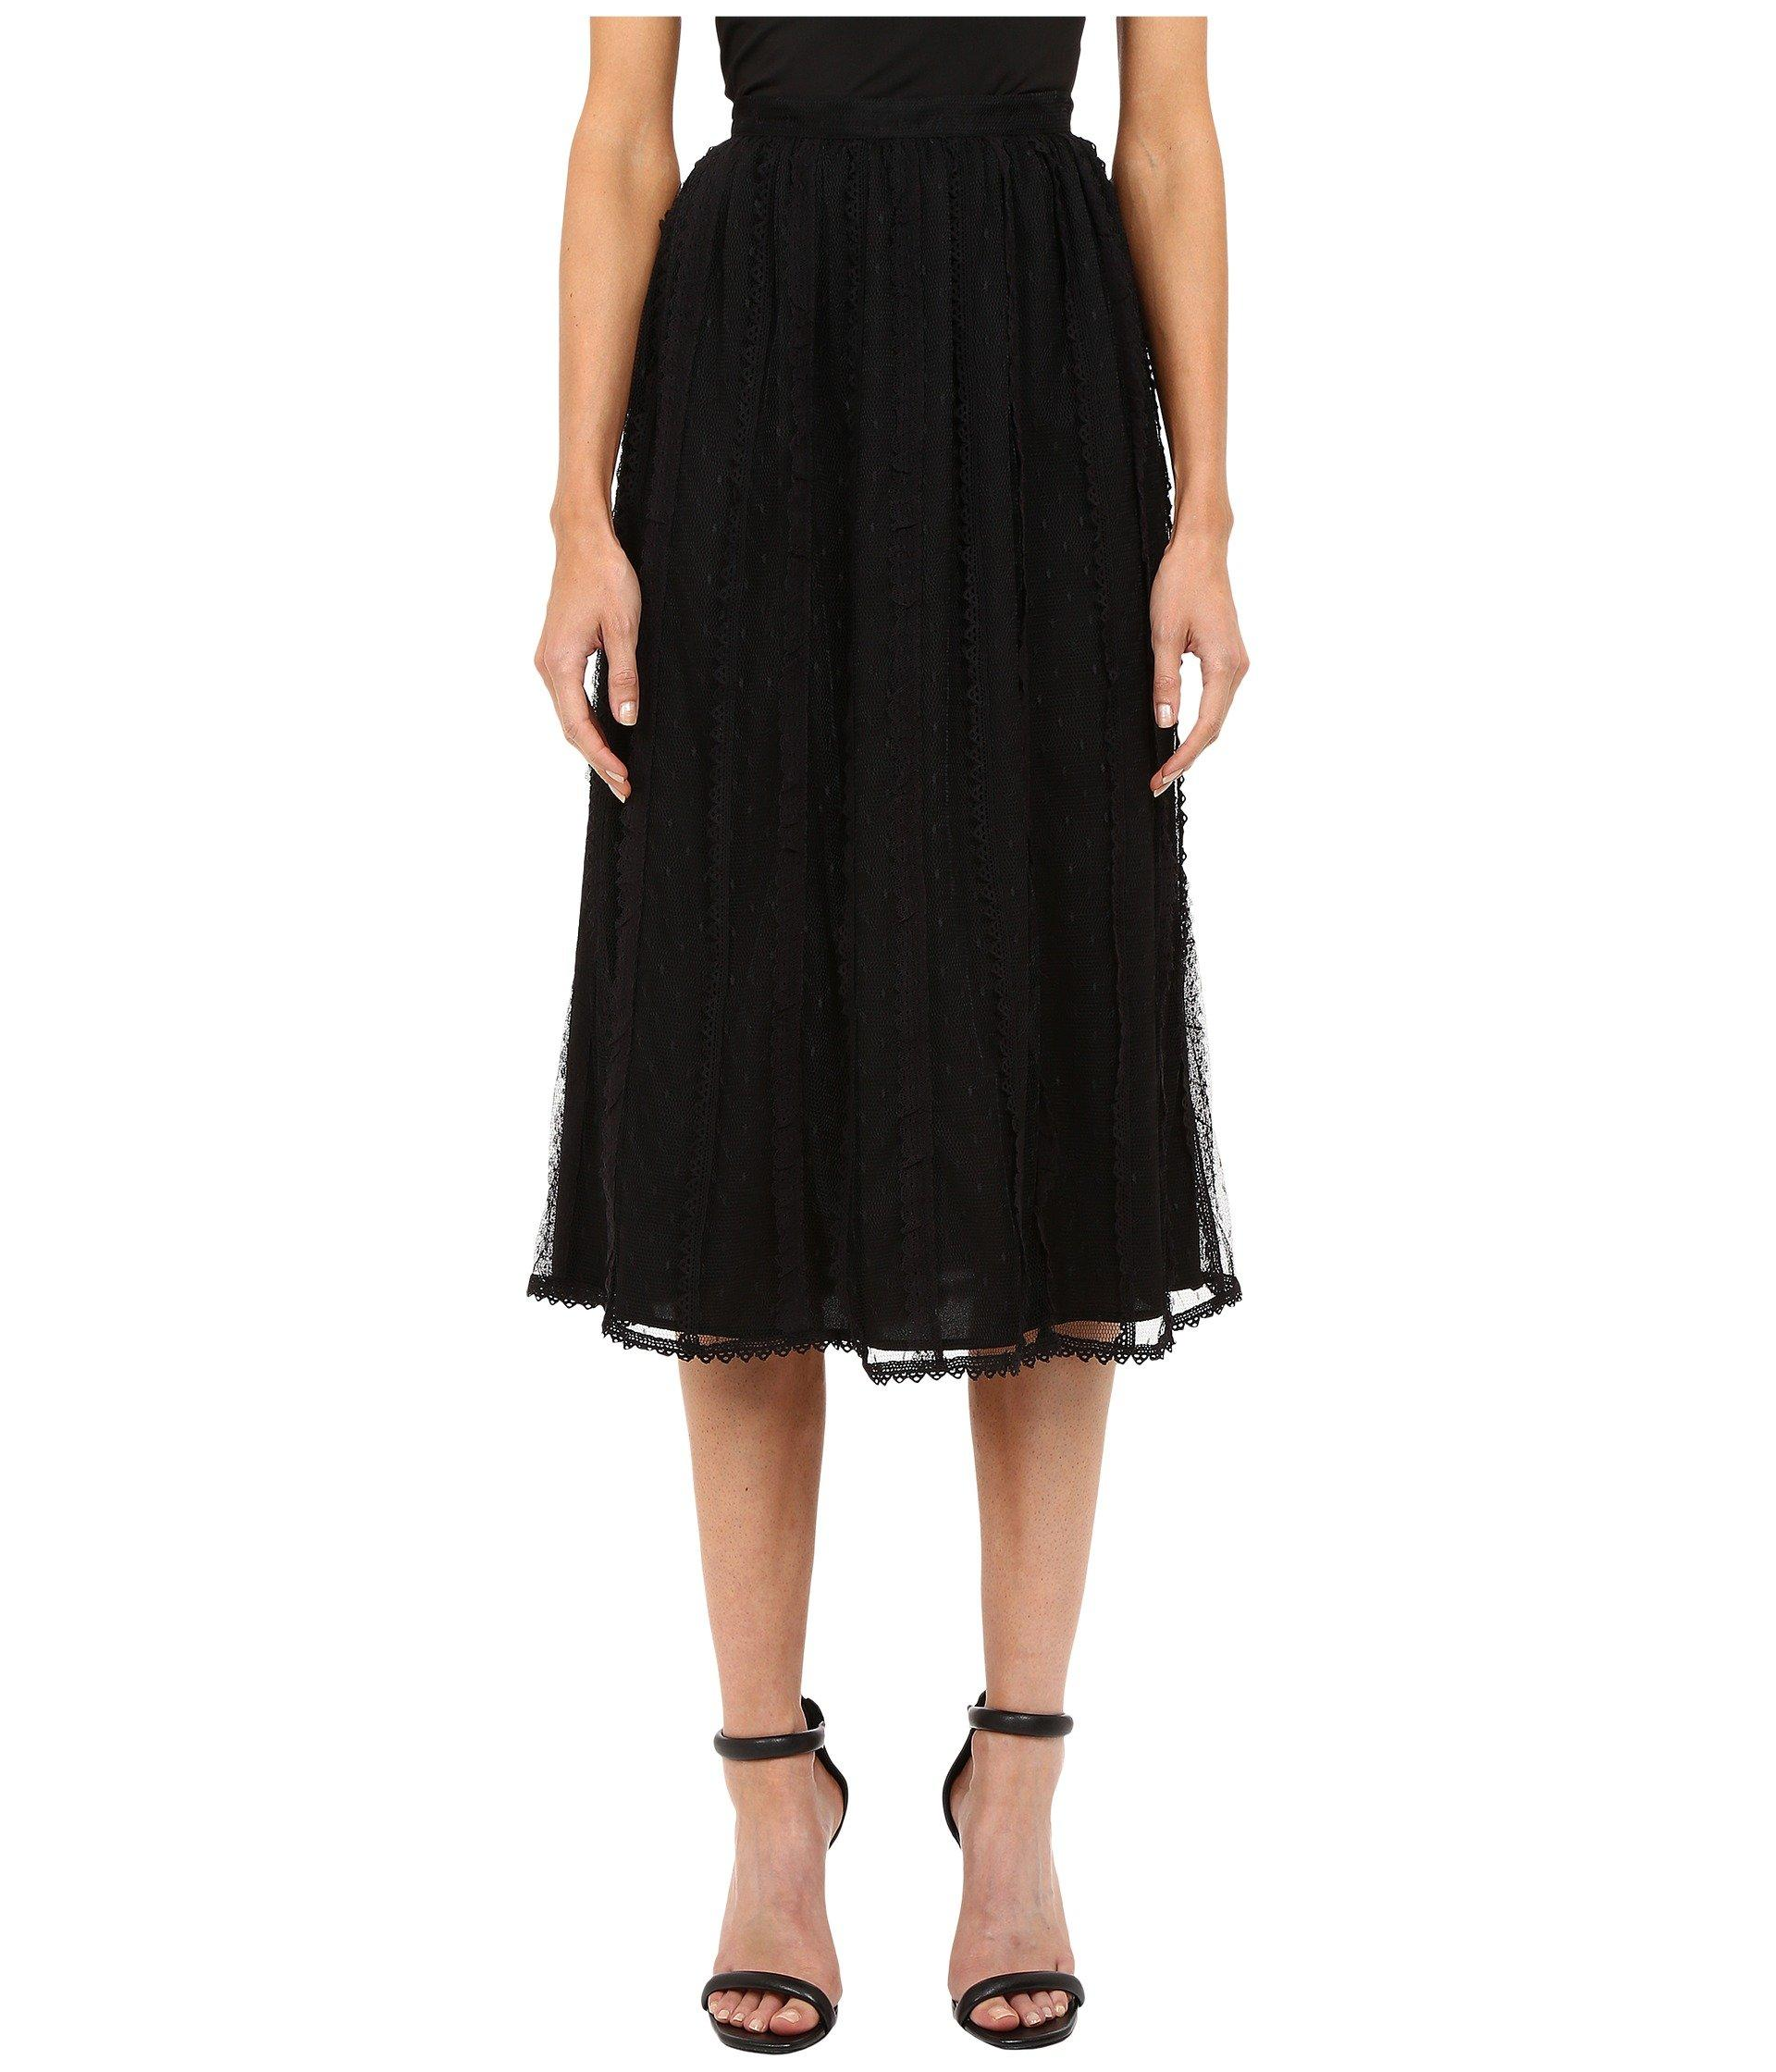 1013e47594 Red Valentino Point D'Esprit Tulle Macrame & Lace Ribbons Skirt In ...